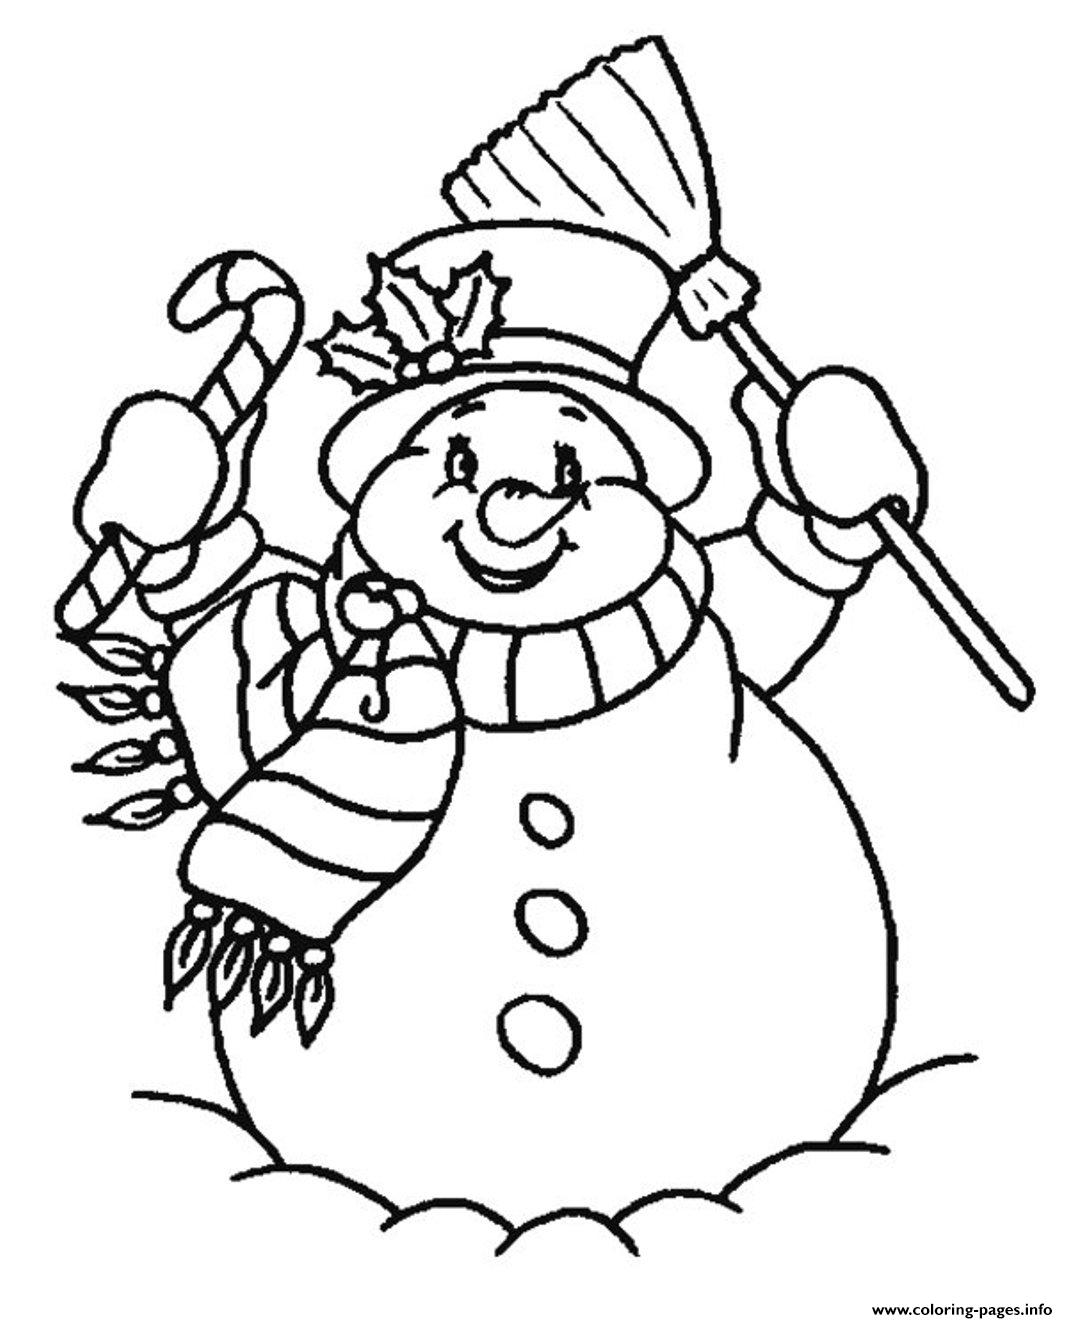 Free Snowman S For Kidsf978 Coloring Pages Printable